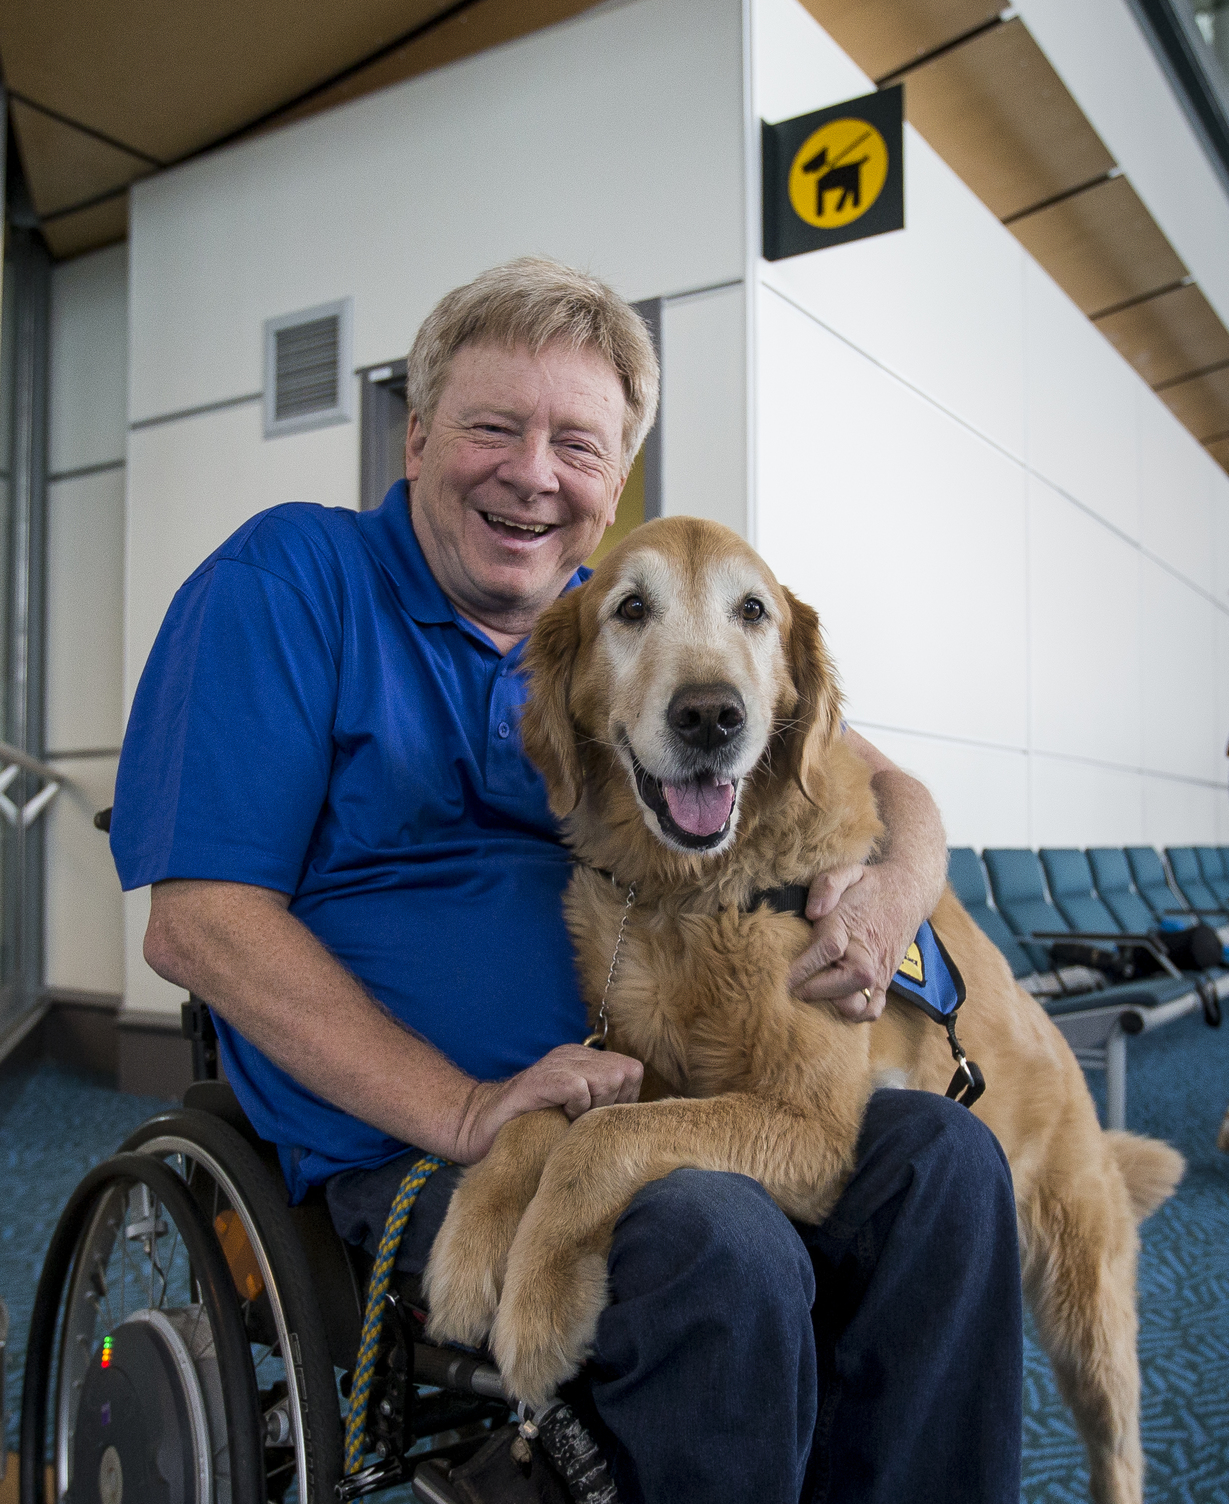 Brad McCannell with his assistance dog in front of YVR's pet relief area